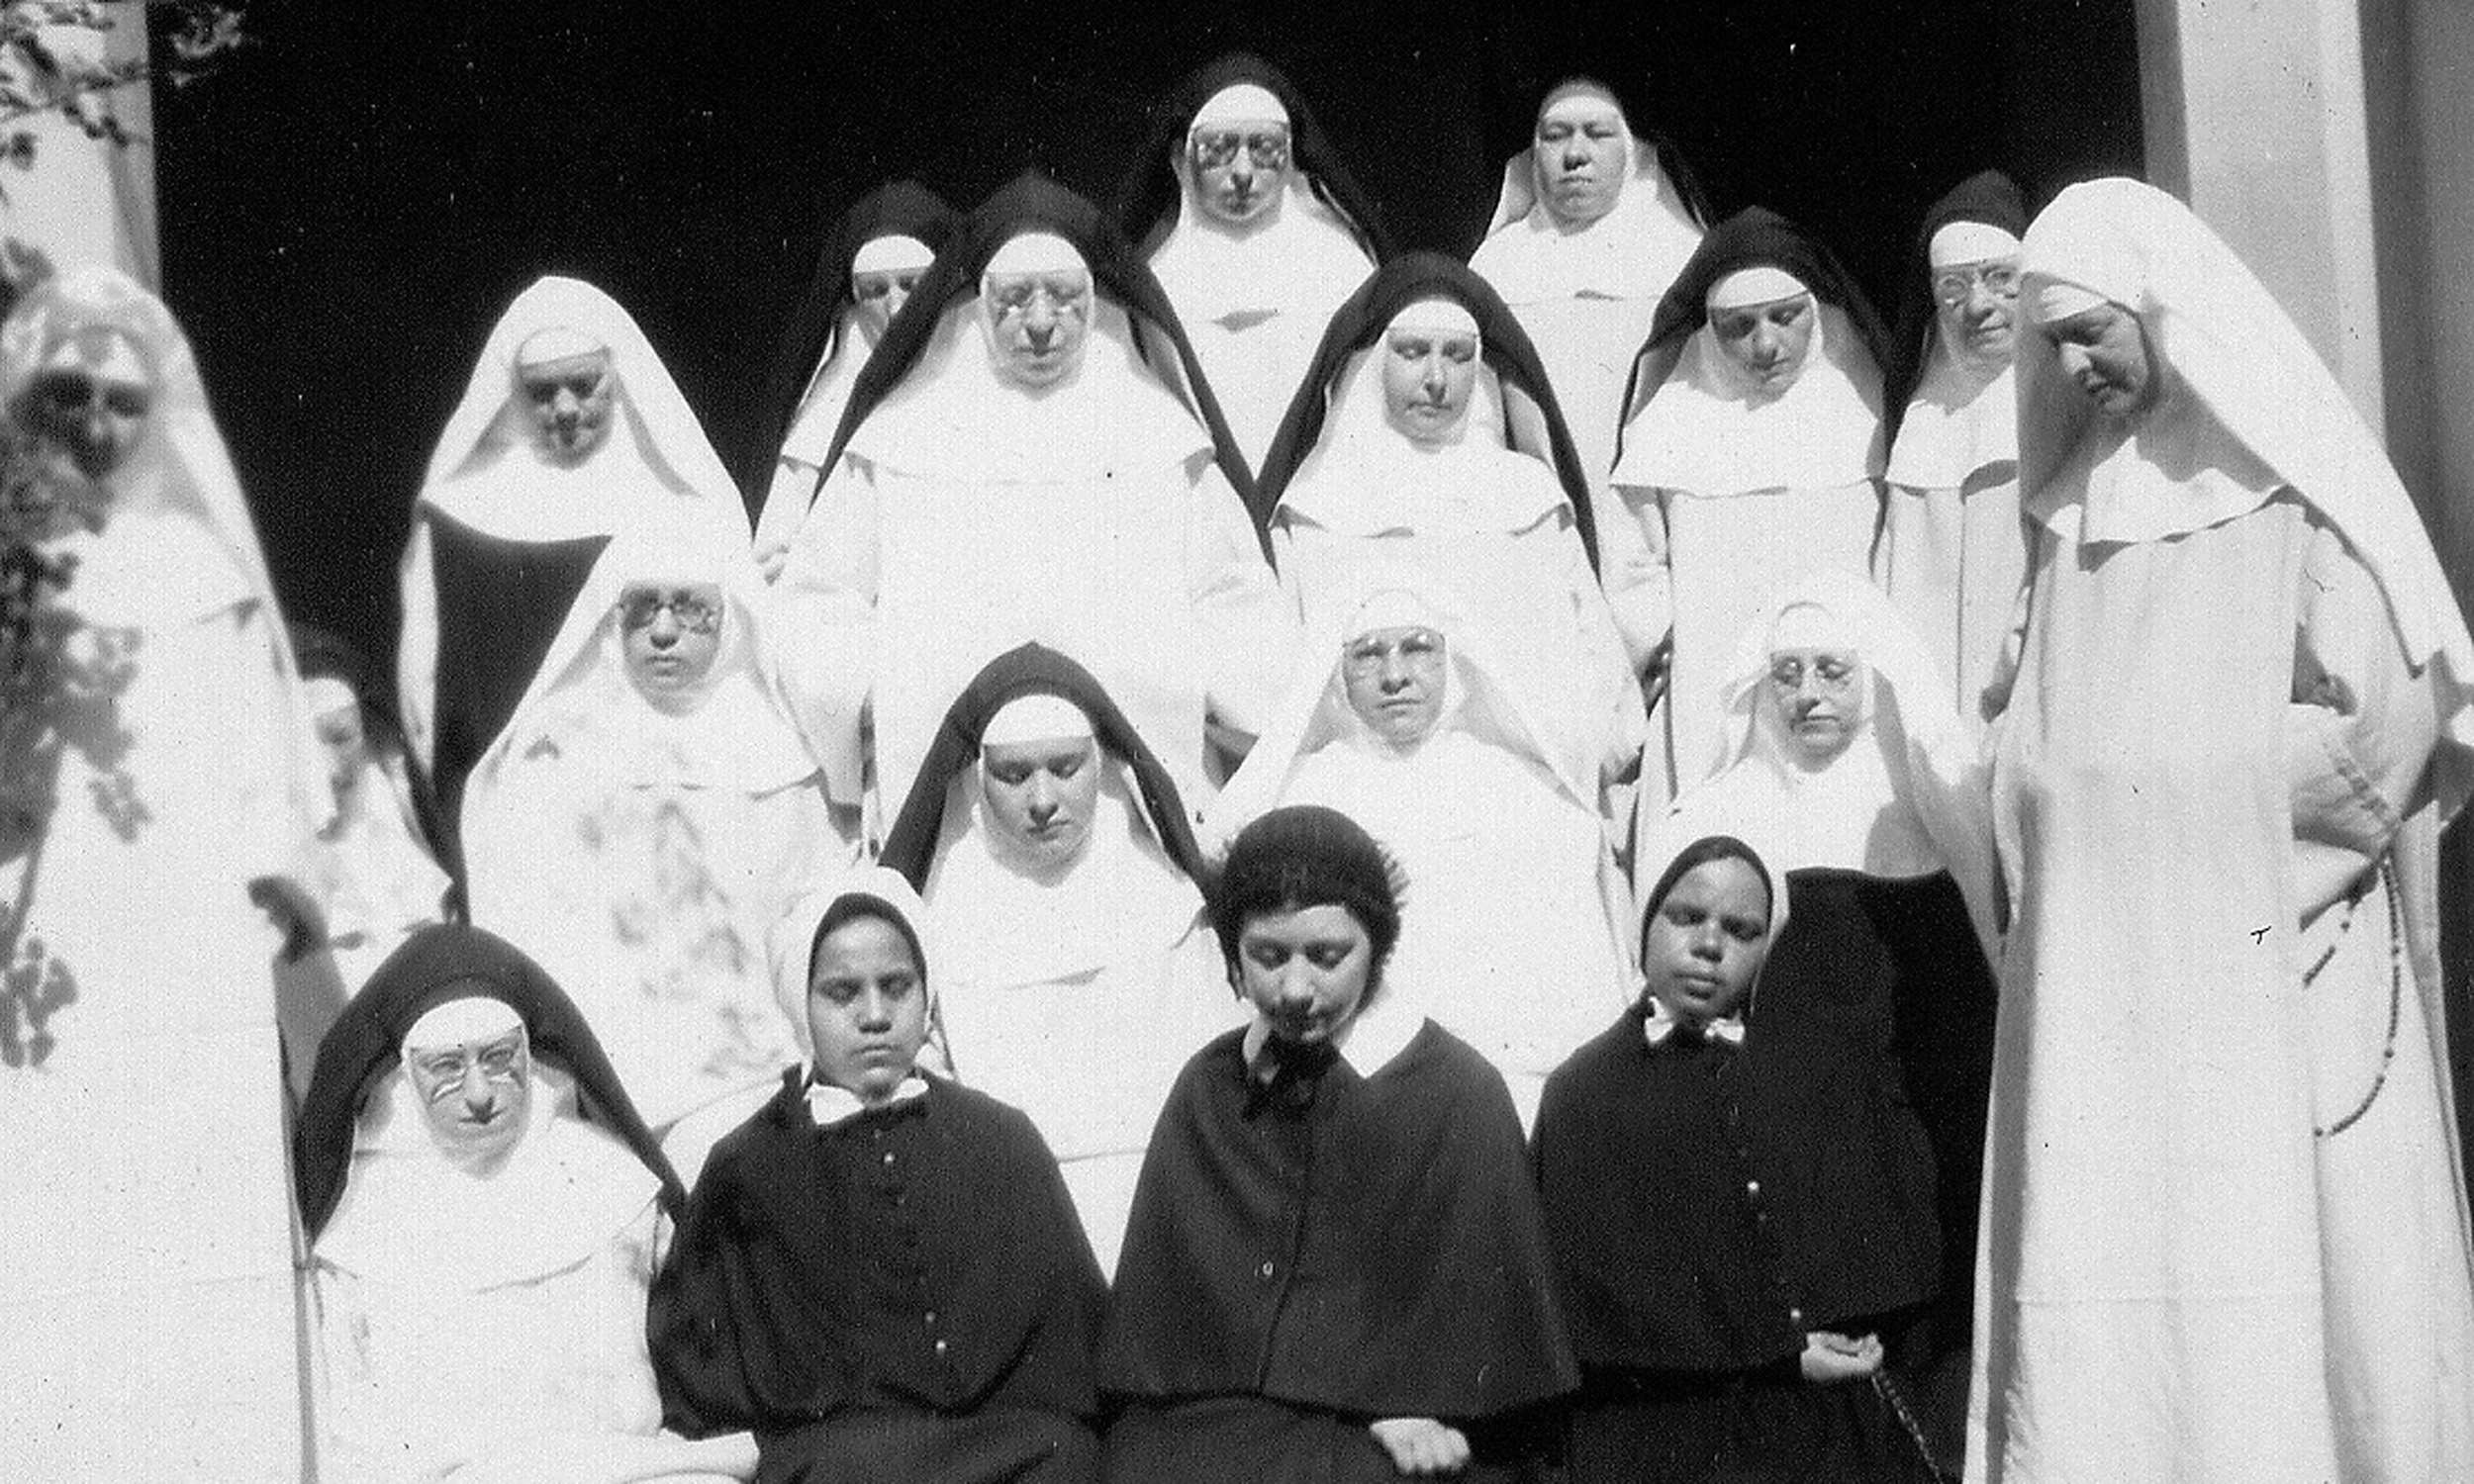 A photo of our community from the 1930s. Already it had grown from the very small group of nuns who first arrived in San Francisco in 1921.